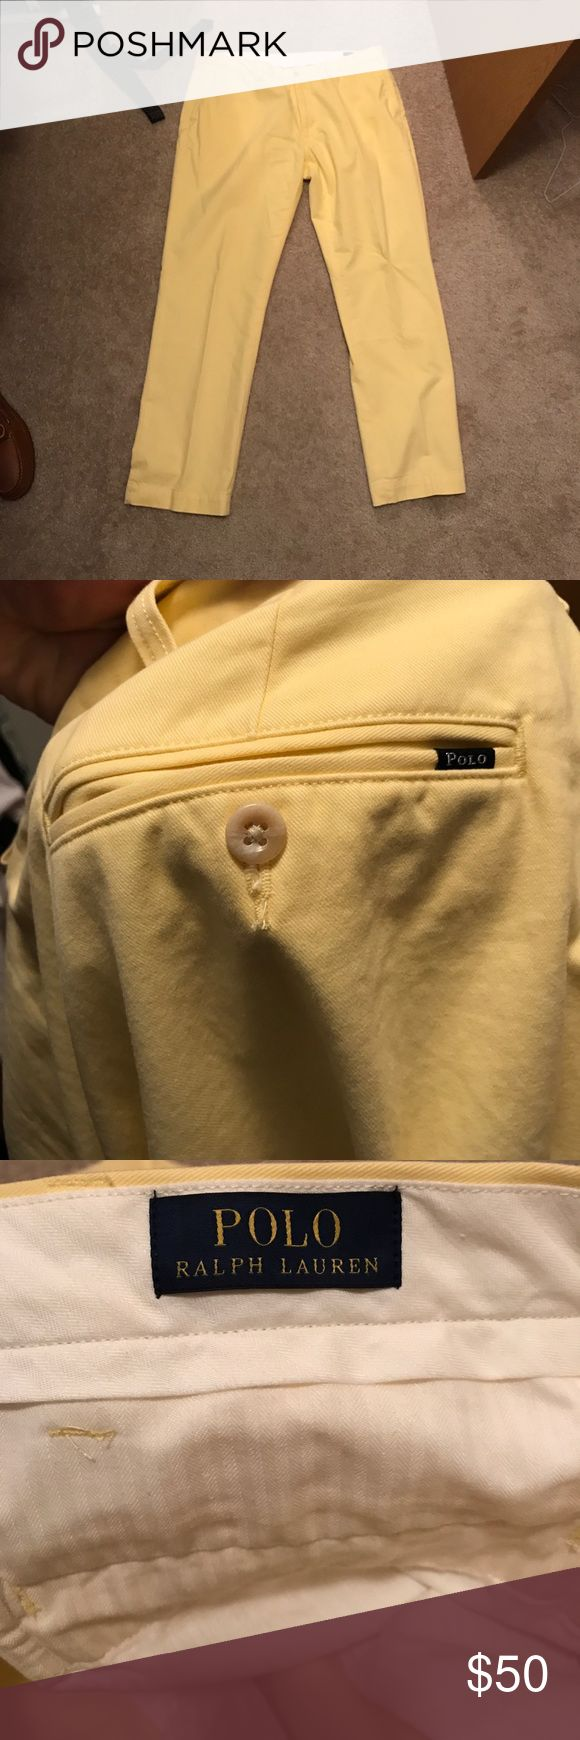 NEW Ralph Lauren classic yellow pastel pants 40/32 Brand new without tags polo Ralph Lauren yellow pastel pants! Perfect for summer. Size 40/32. Never been worn. Just took tags off. Polo by Ralph Lauren Pants Chinos & Khakis